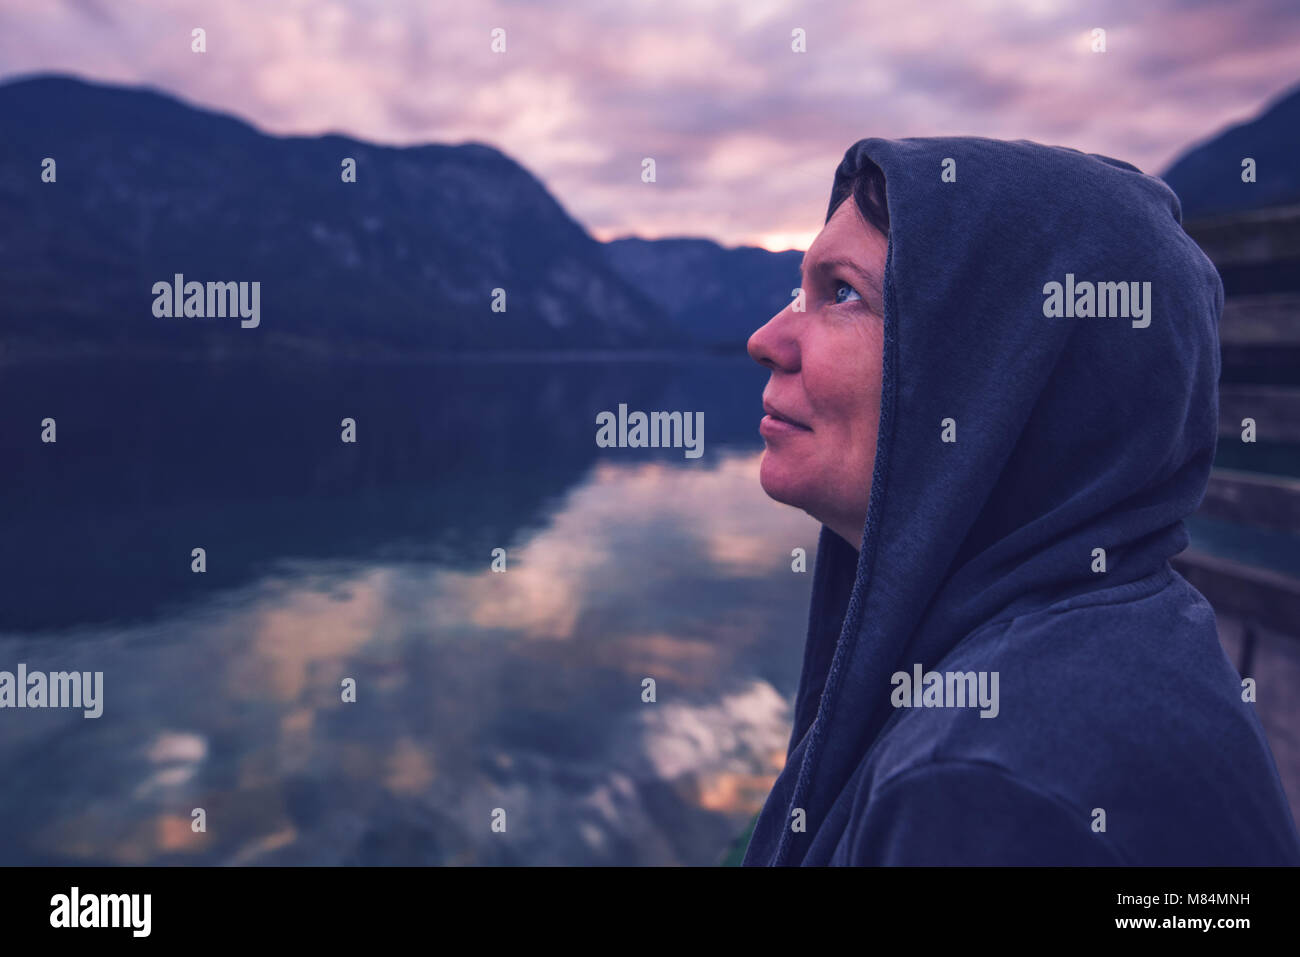 Lonely woman looking at dramatic sky. Female person in hoodie standing alone by the lake, ultra violet toned shadows - Stock Image